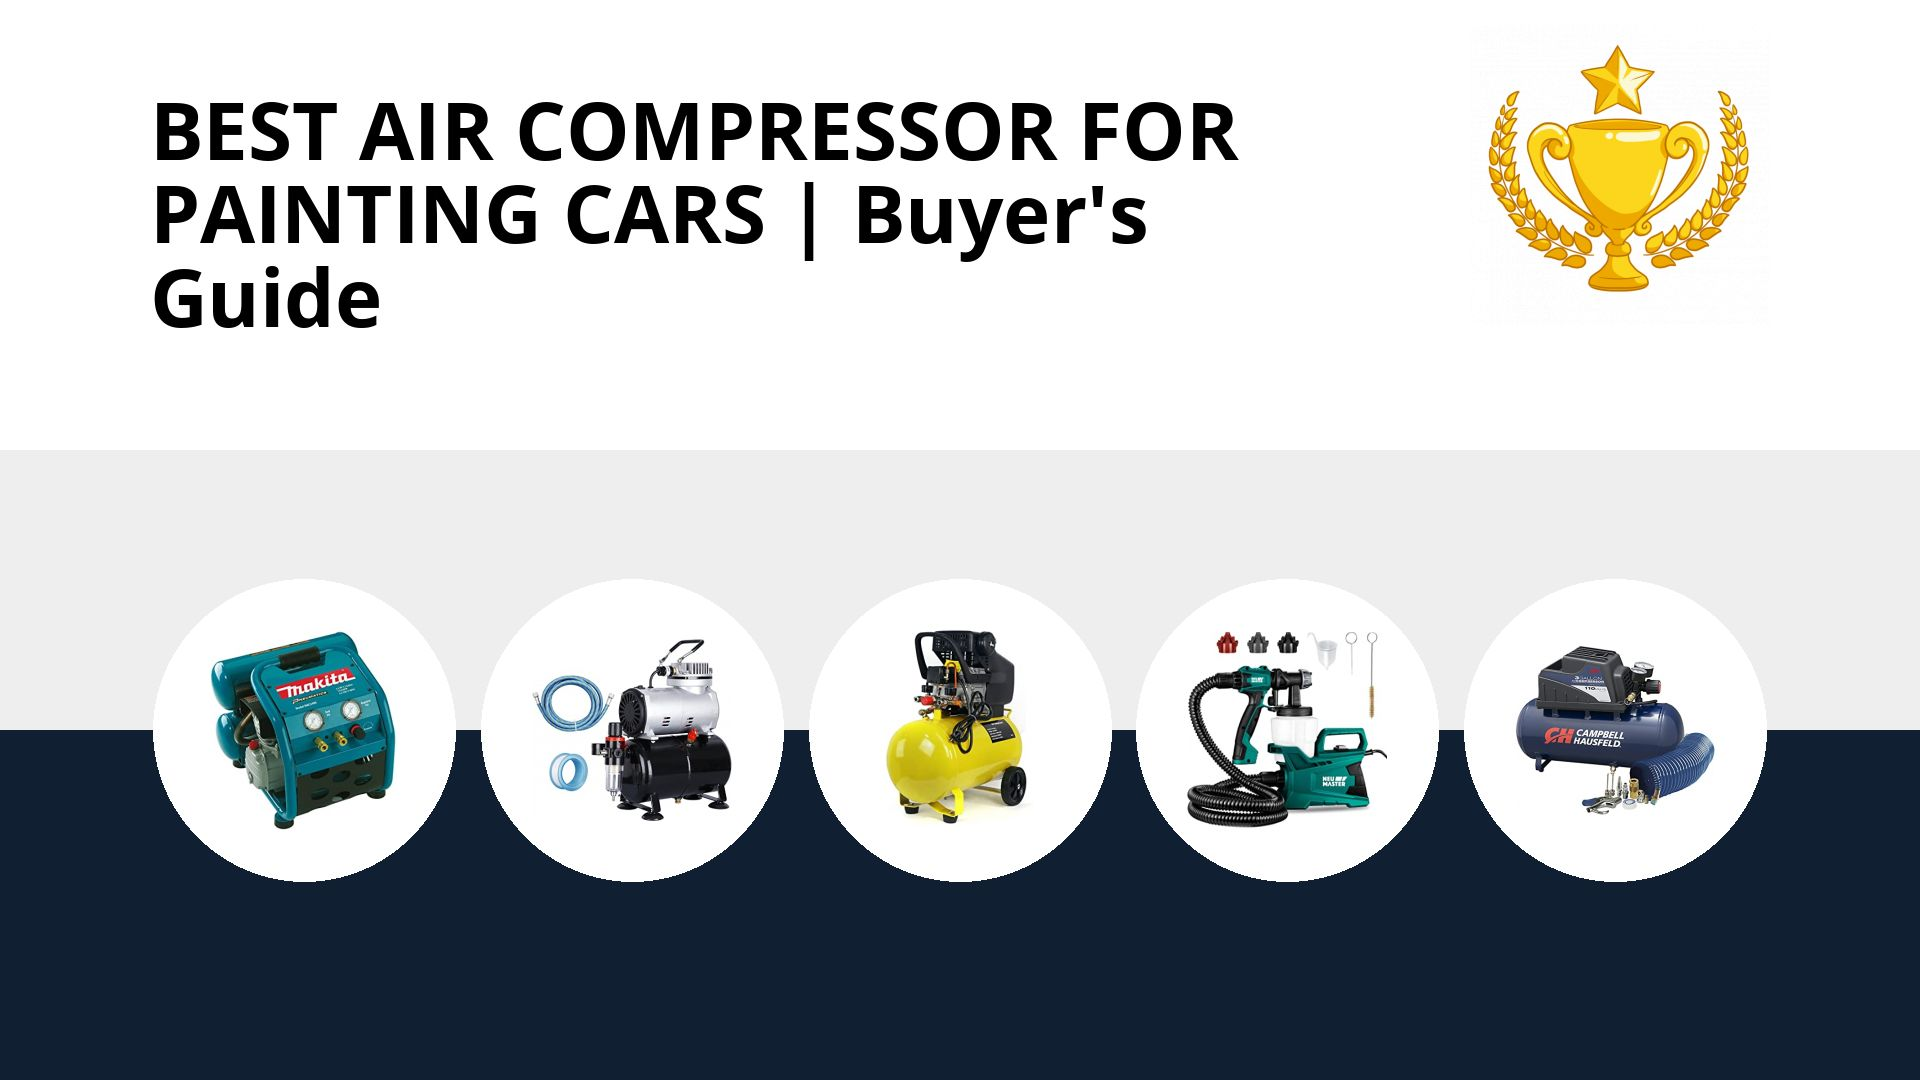 Best Air Compressor For Painting Cars: image